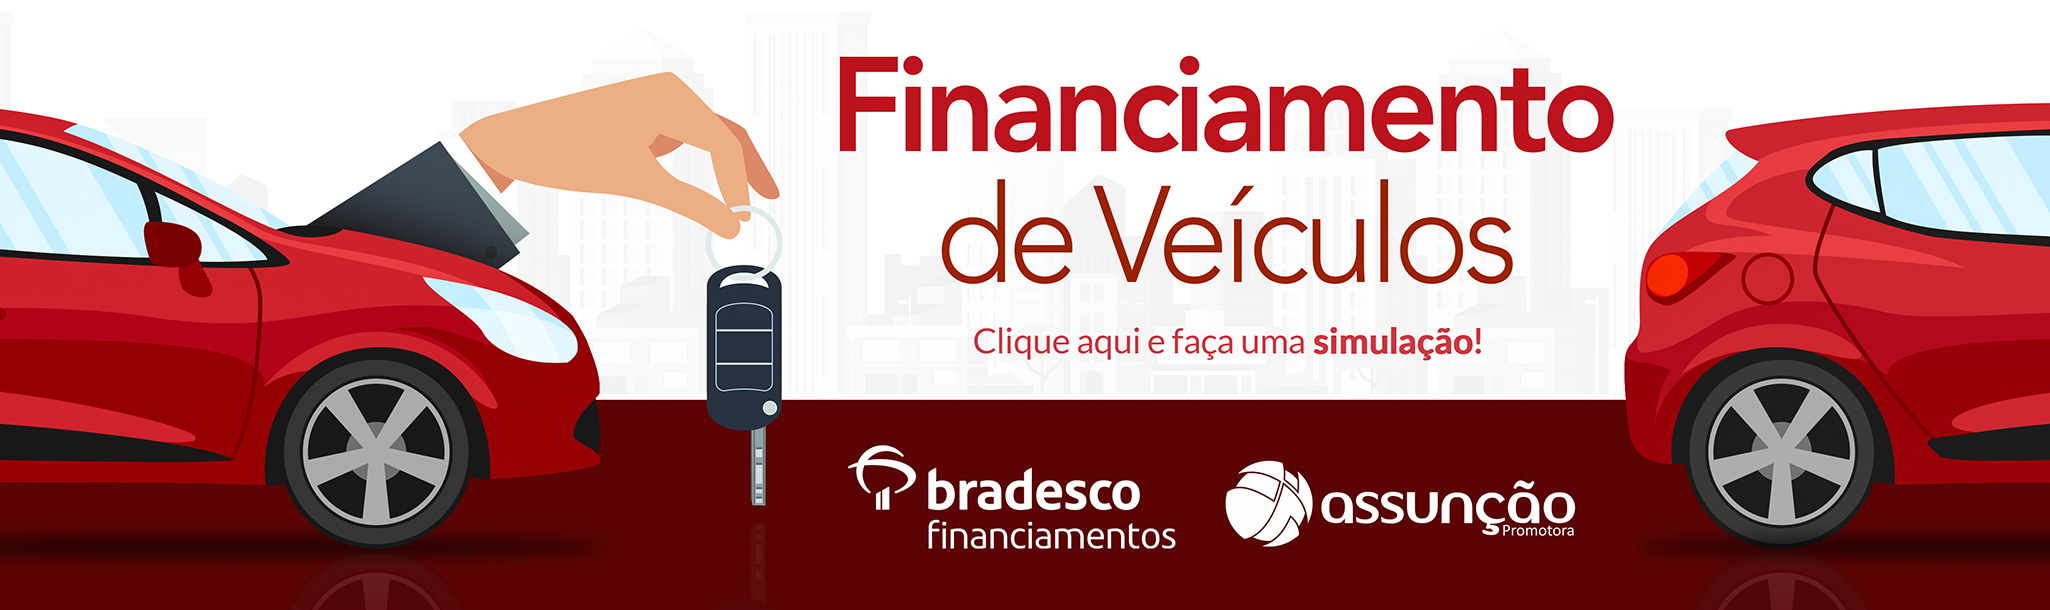 FINANCIAMENTO DE VEÍCULOS BRADESCO